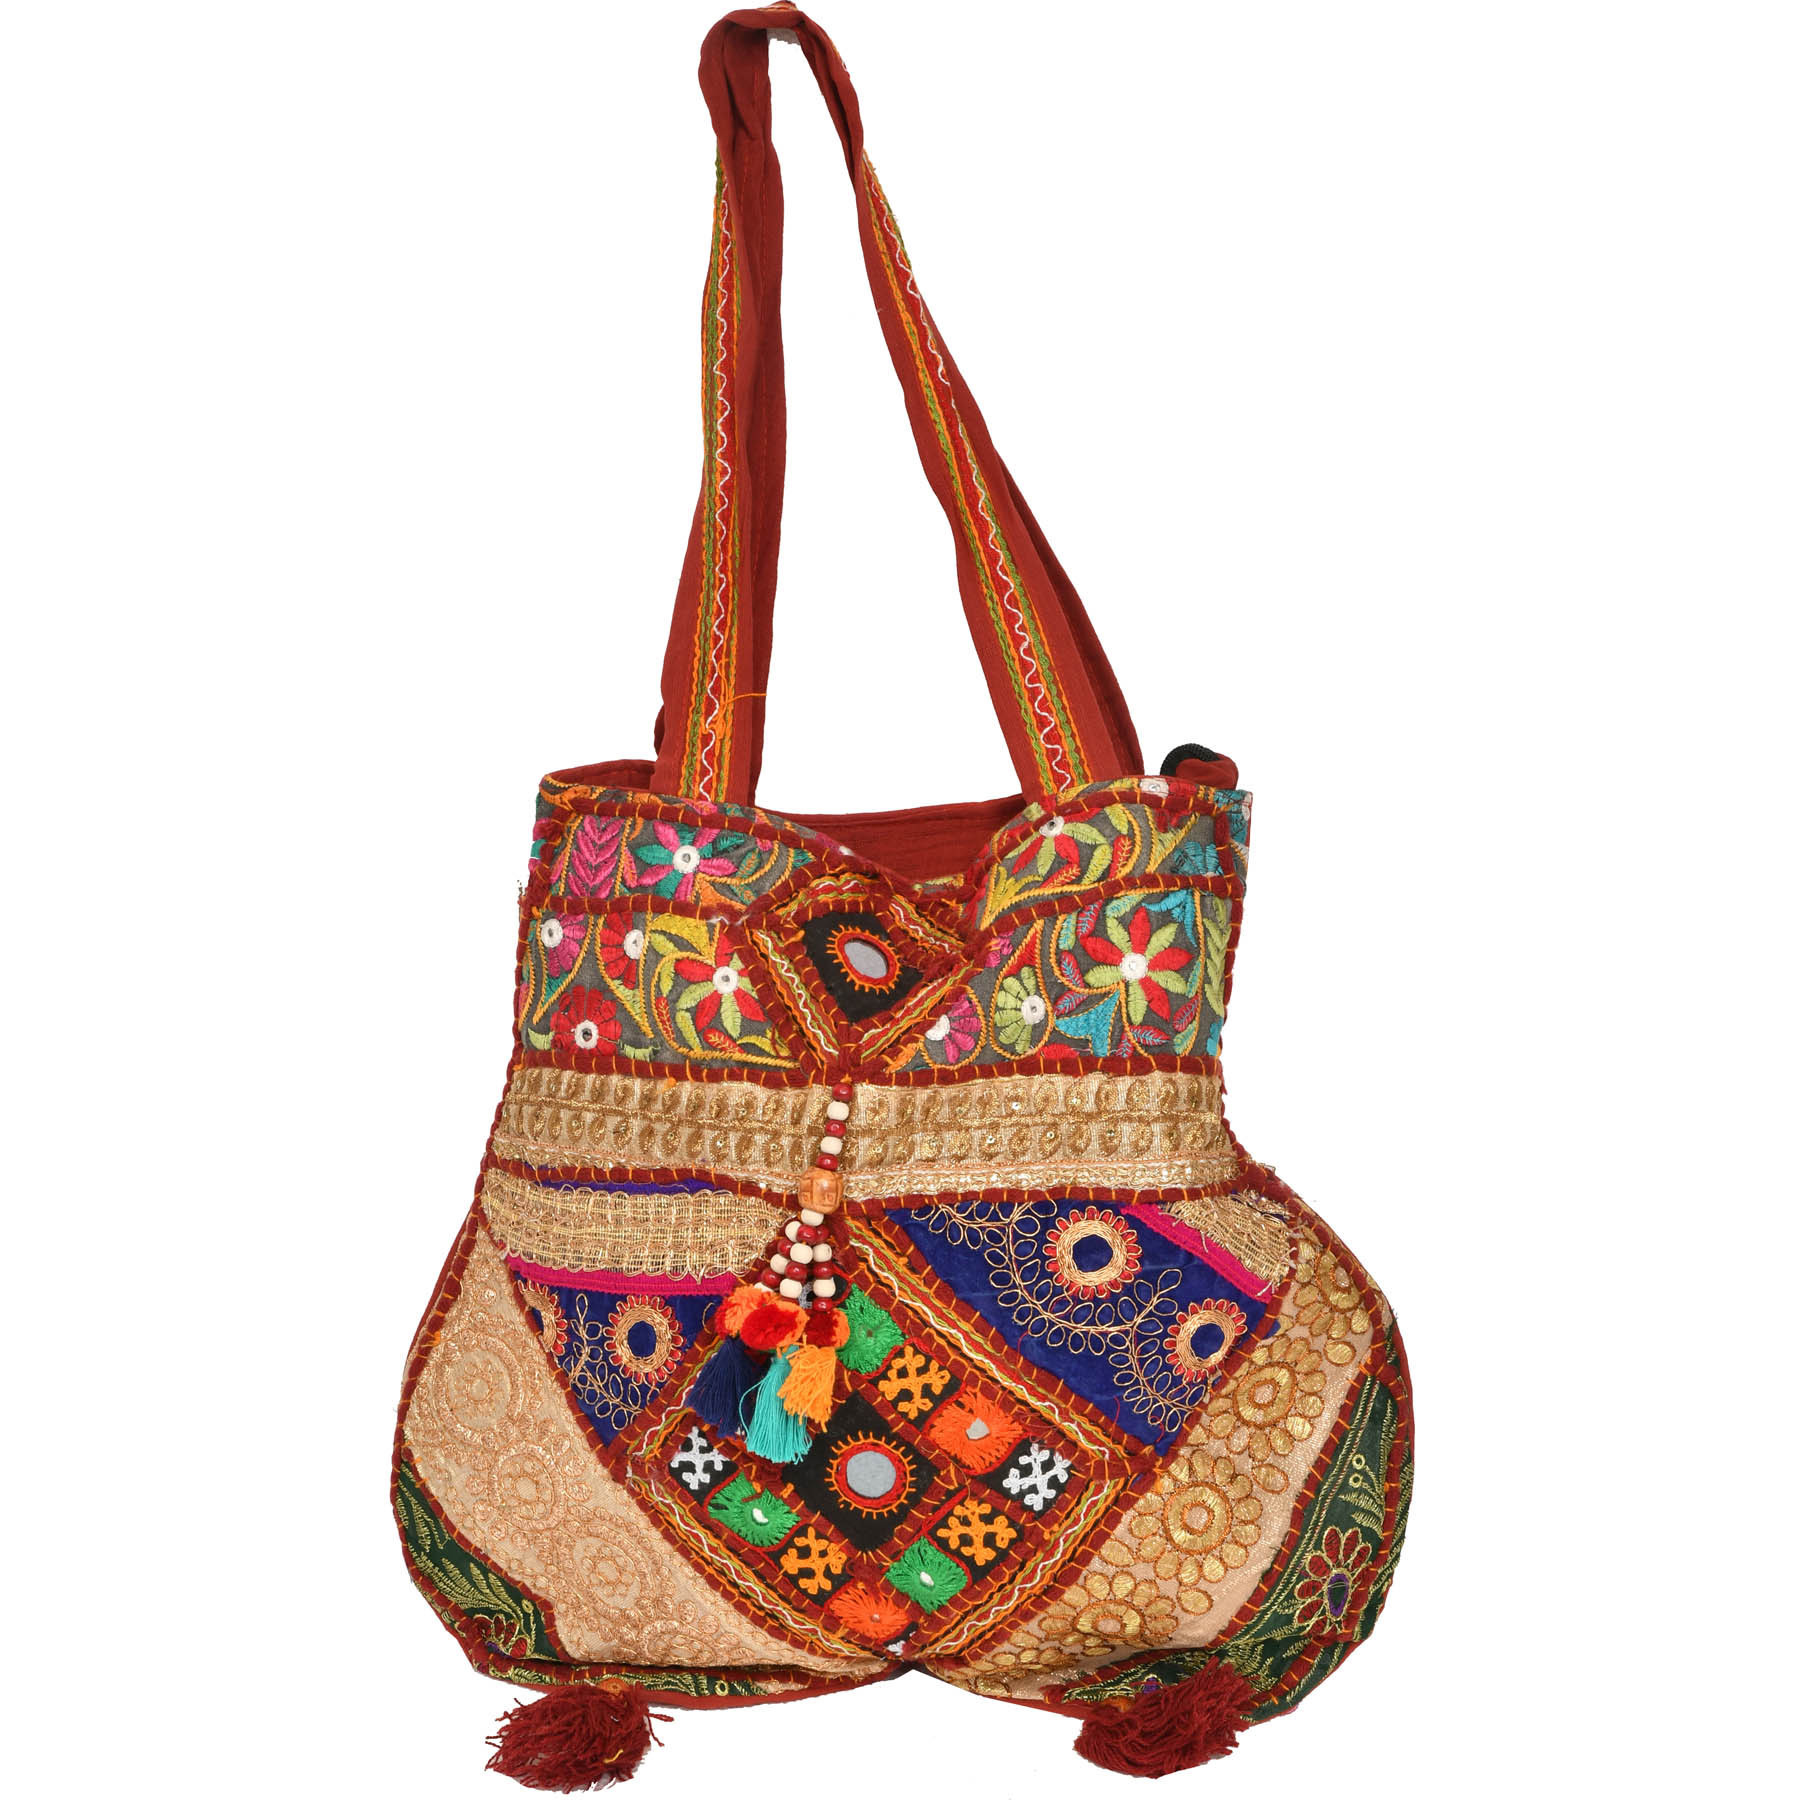 Earth-Red Shoulder Bag from kutch with Embroidery and Large Mirrors